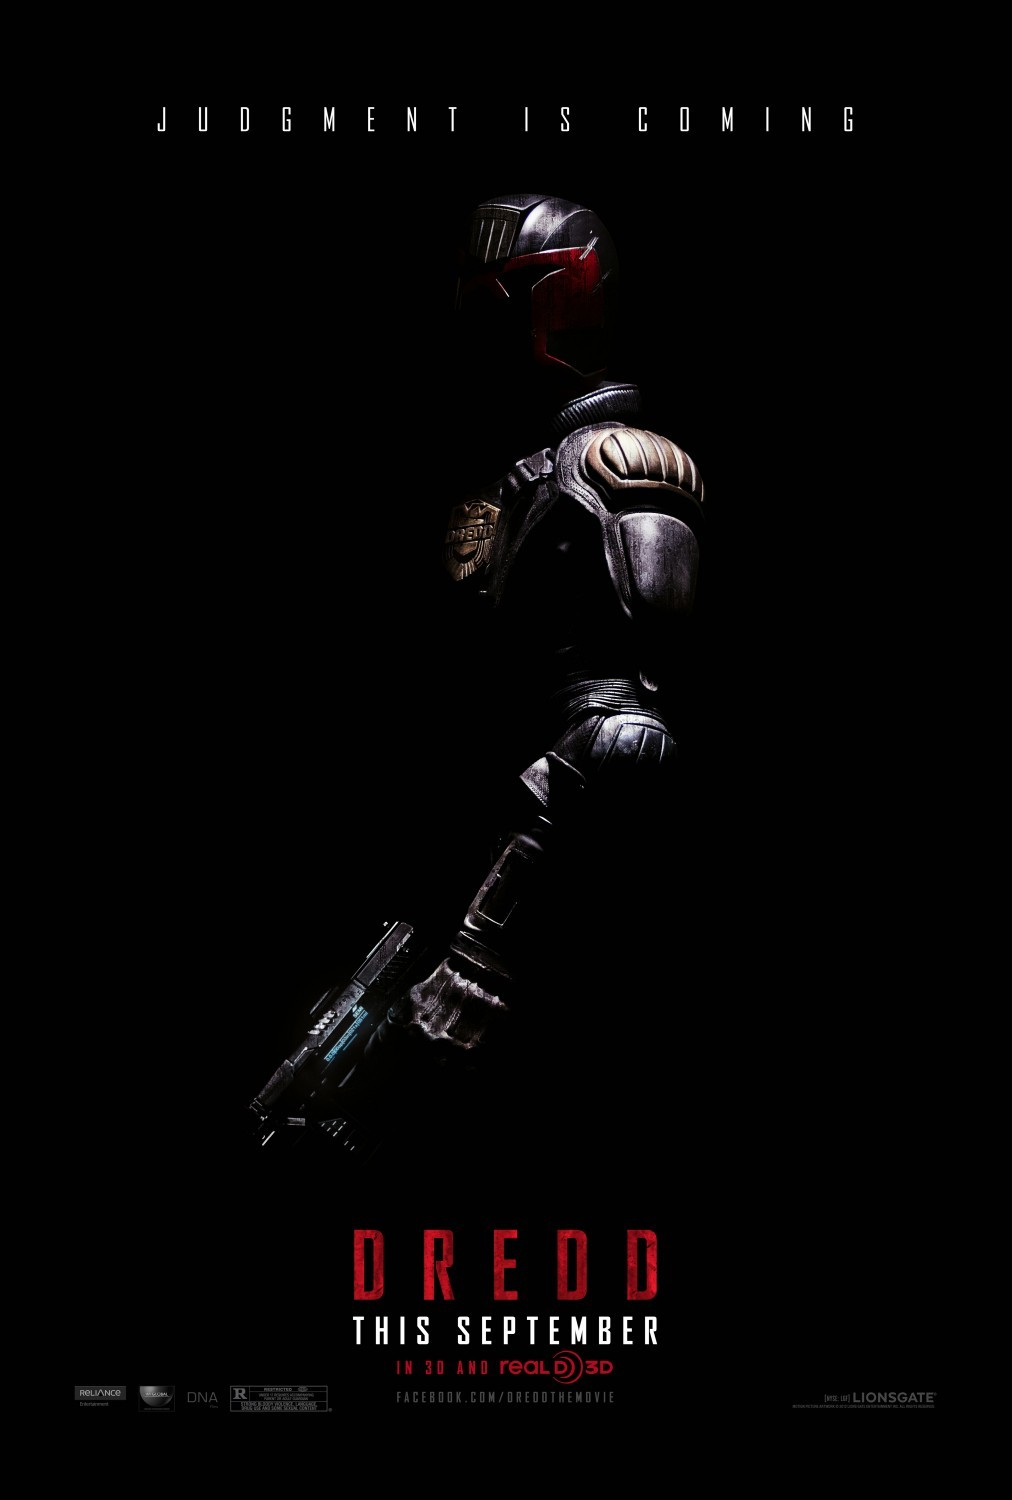 DREDD Director: Pete Travis Writers: Alex Garland Stars: Karl Urban, Olivia Thirlby and Lena Headey Synopsis: In a violent, futuristic city where the police have the authority to act as judge, jury and executioner, a cop teams with a trainee to take down a gang that deals the reality-altering drug, SLO-MO.